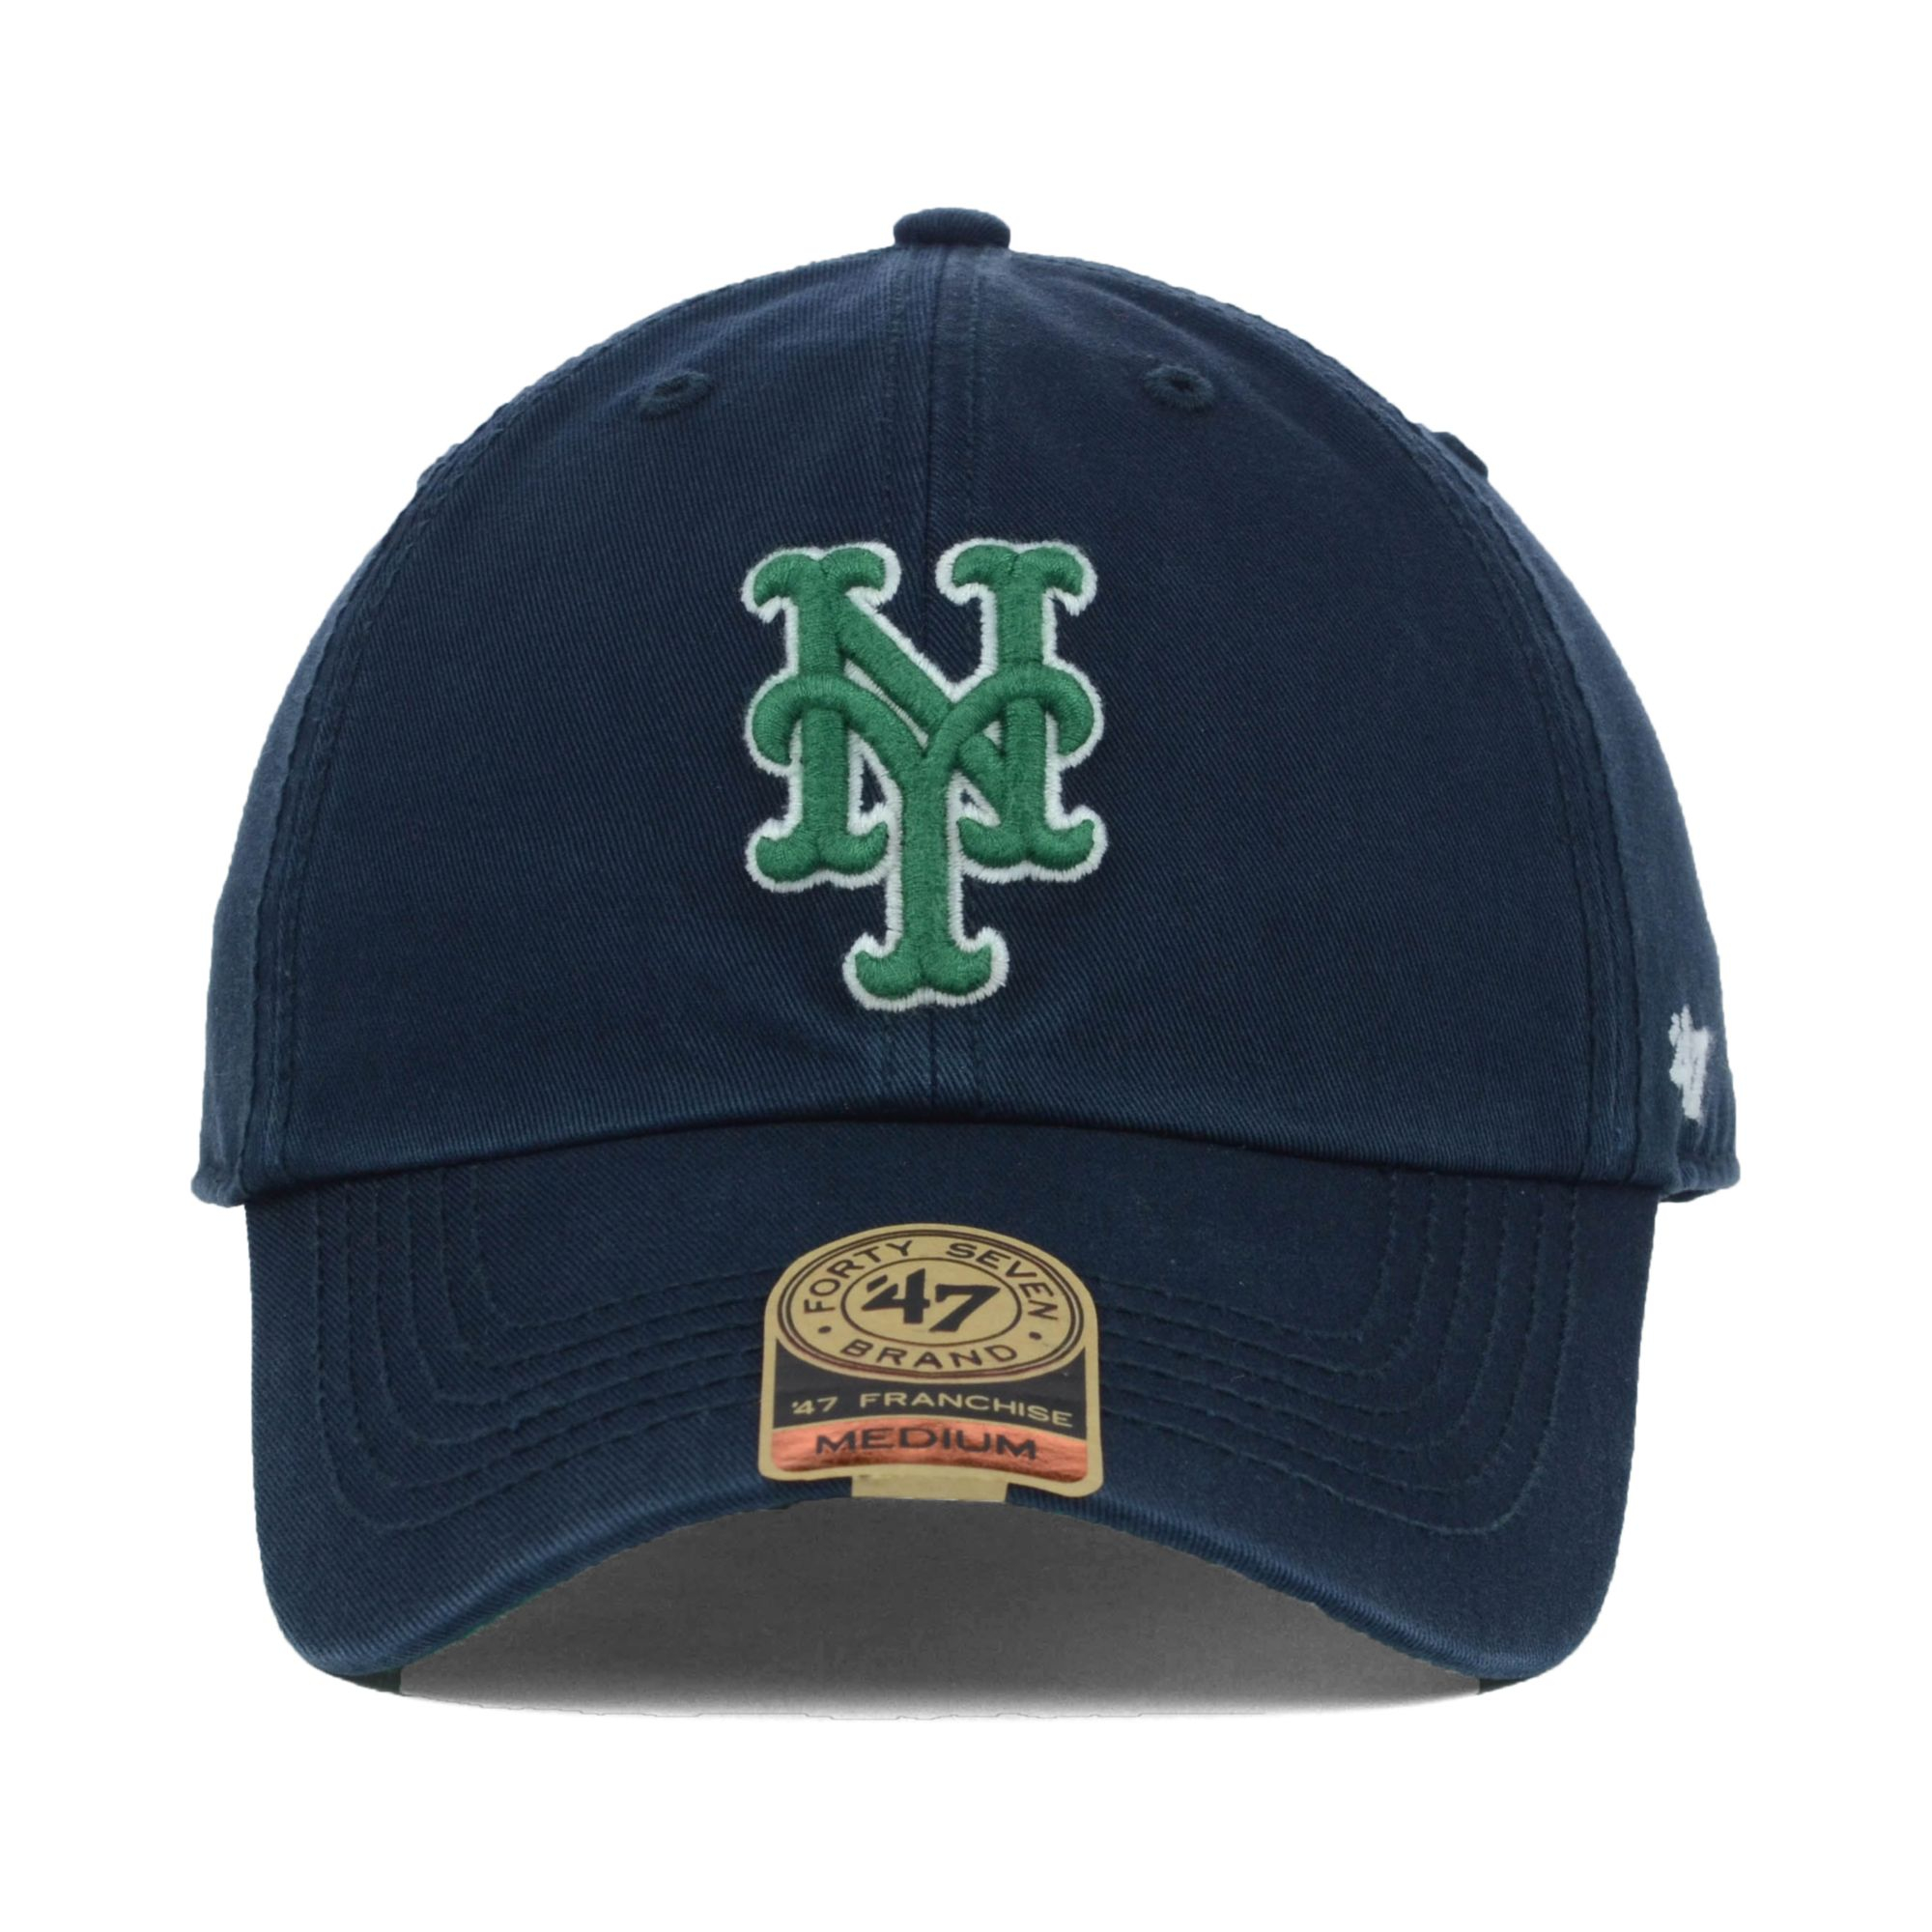 3f5671a58a8 ... ireland lyst 47 brand new york mets mlb dublin cap in blue for men  c50be cf16e